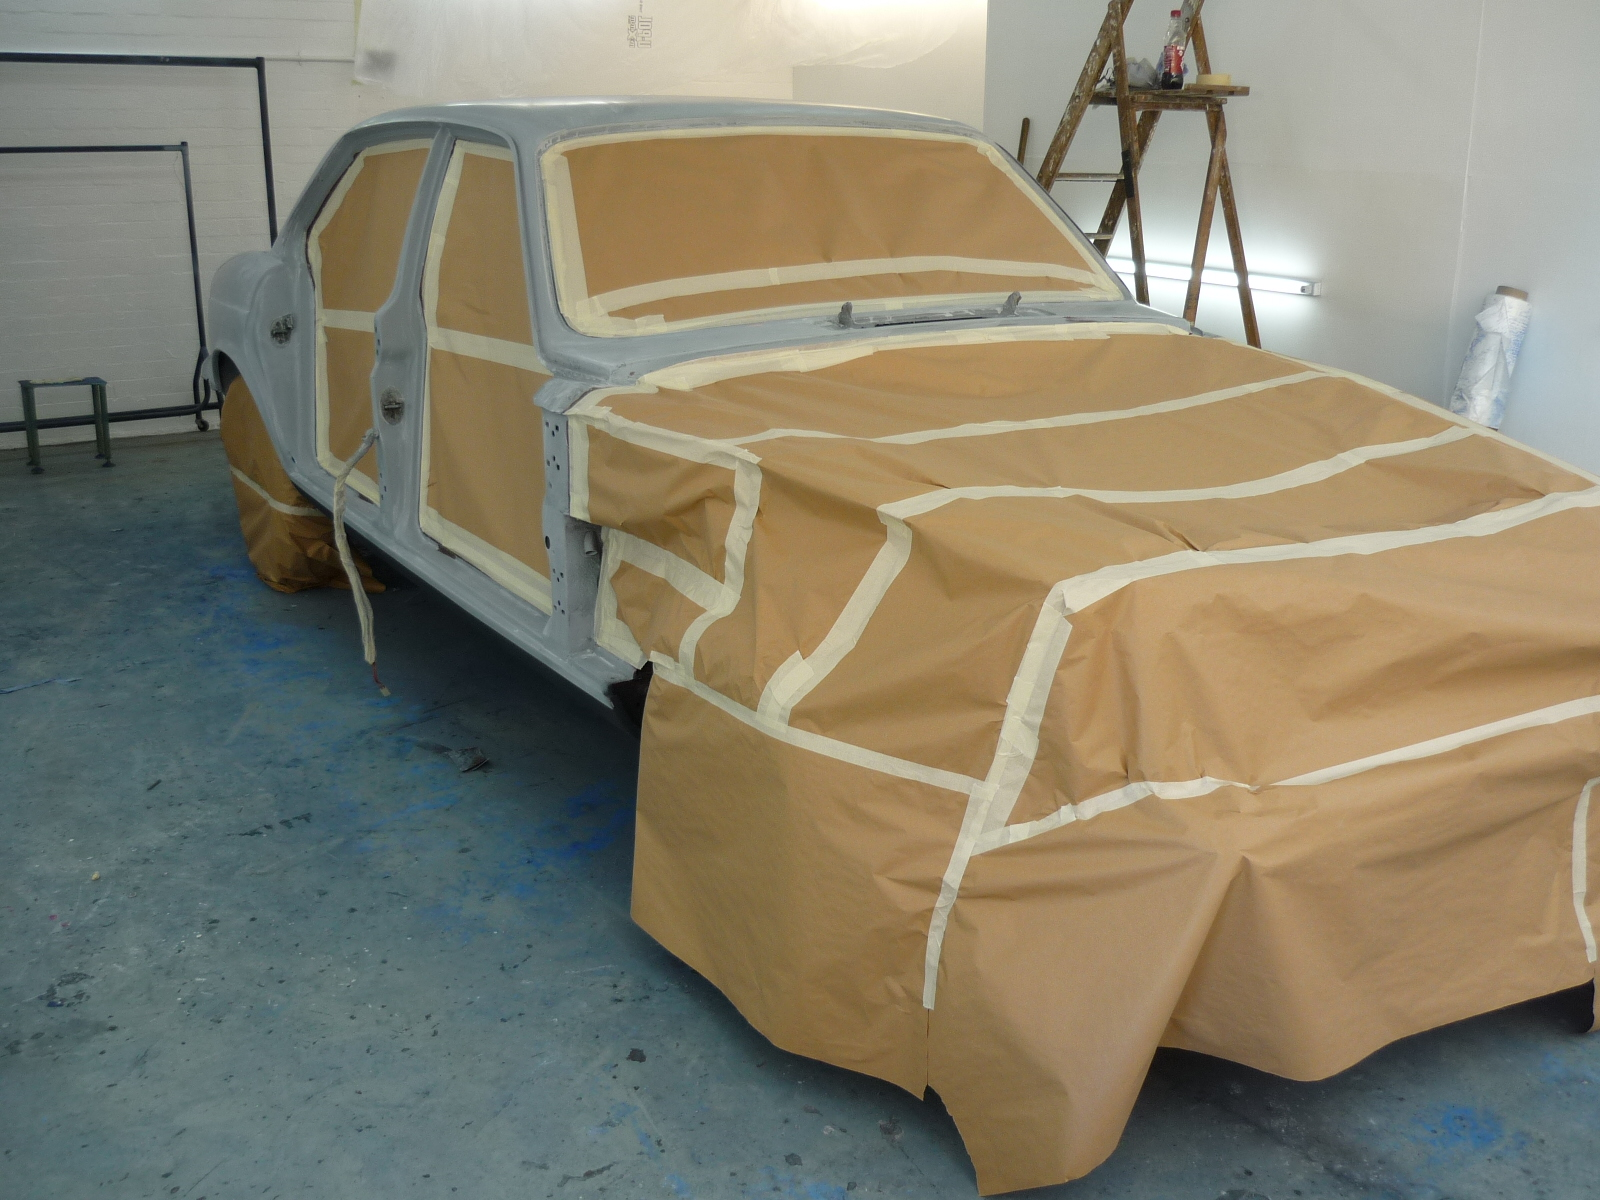 Jaguar XJ6 in Primer